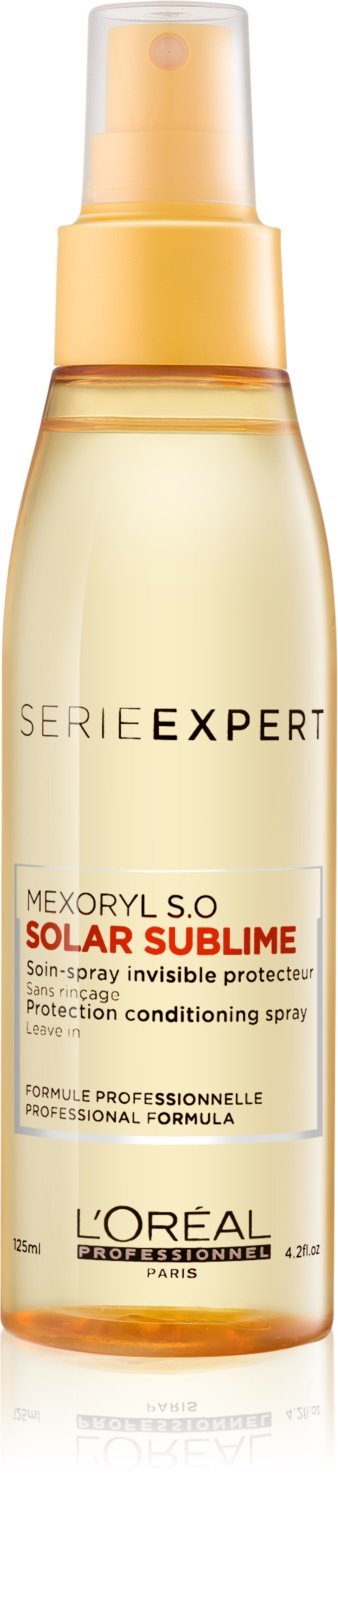 L'Oréal Professionnel Serie Expert Solar Sublime Prot. Conditioning Spray 125 ml